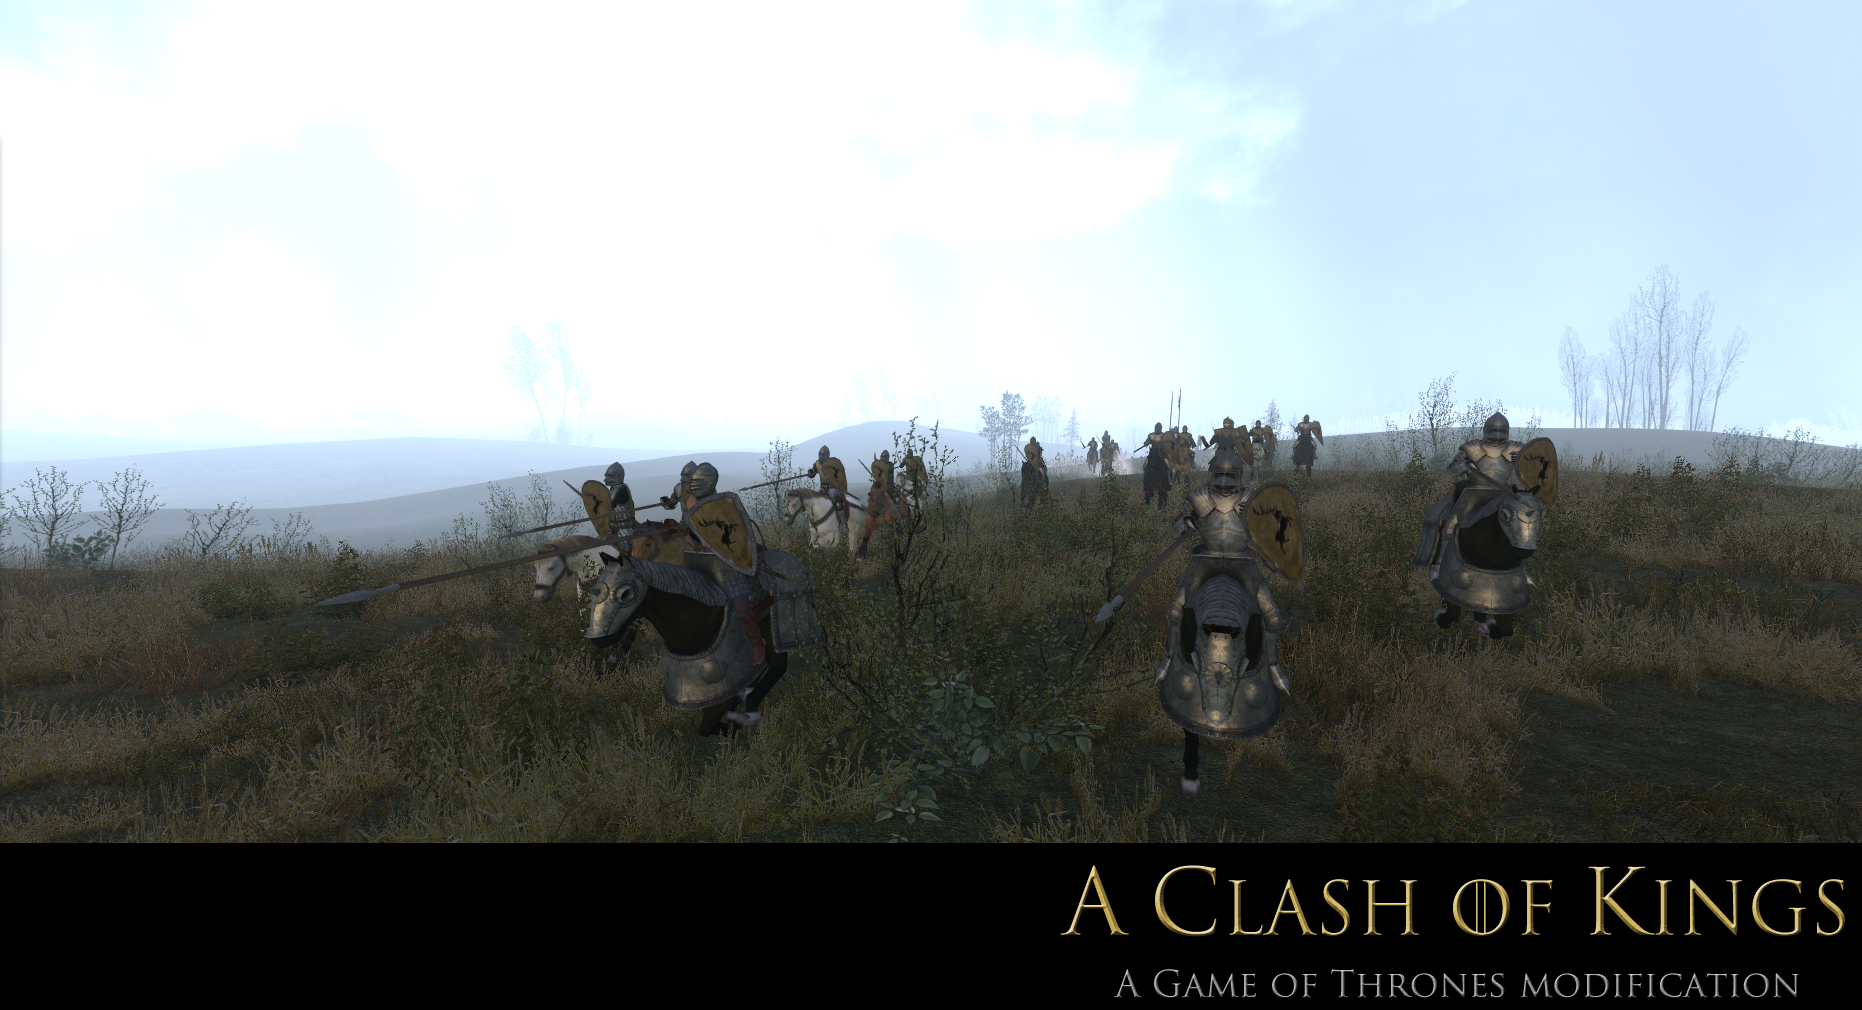 Stormlands charge image - A Clash of Kings (Game of Thrones